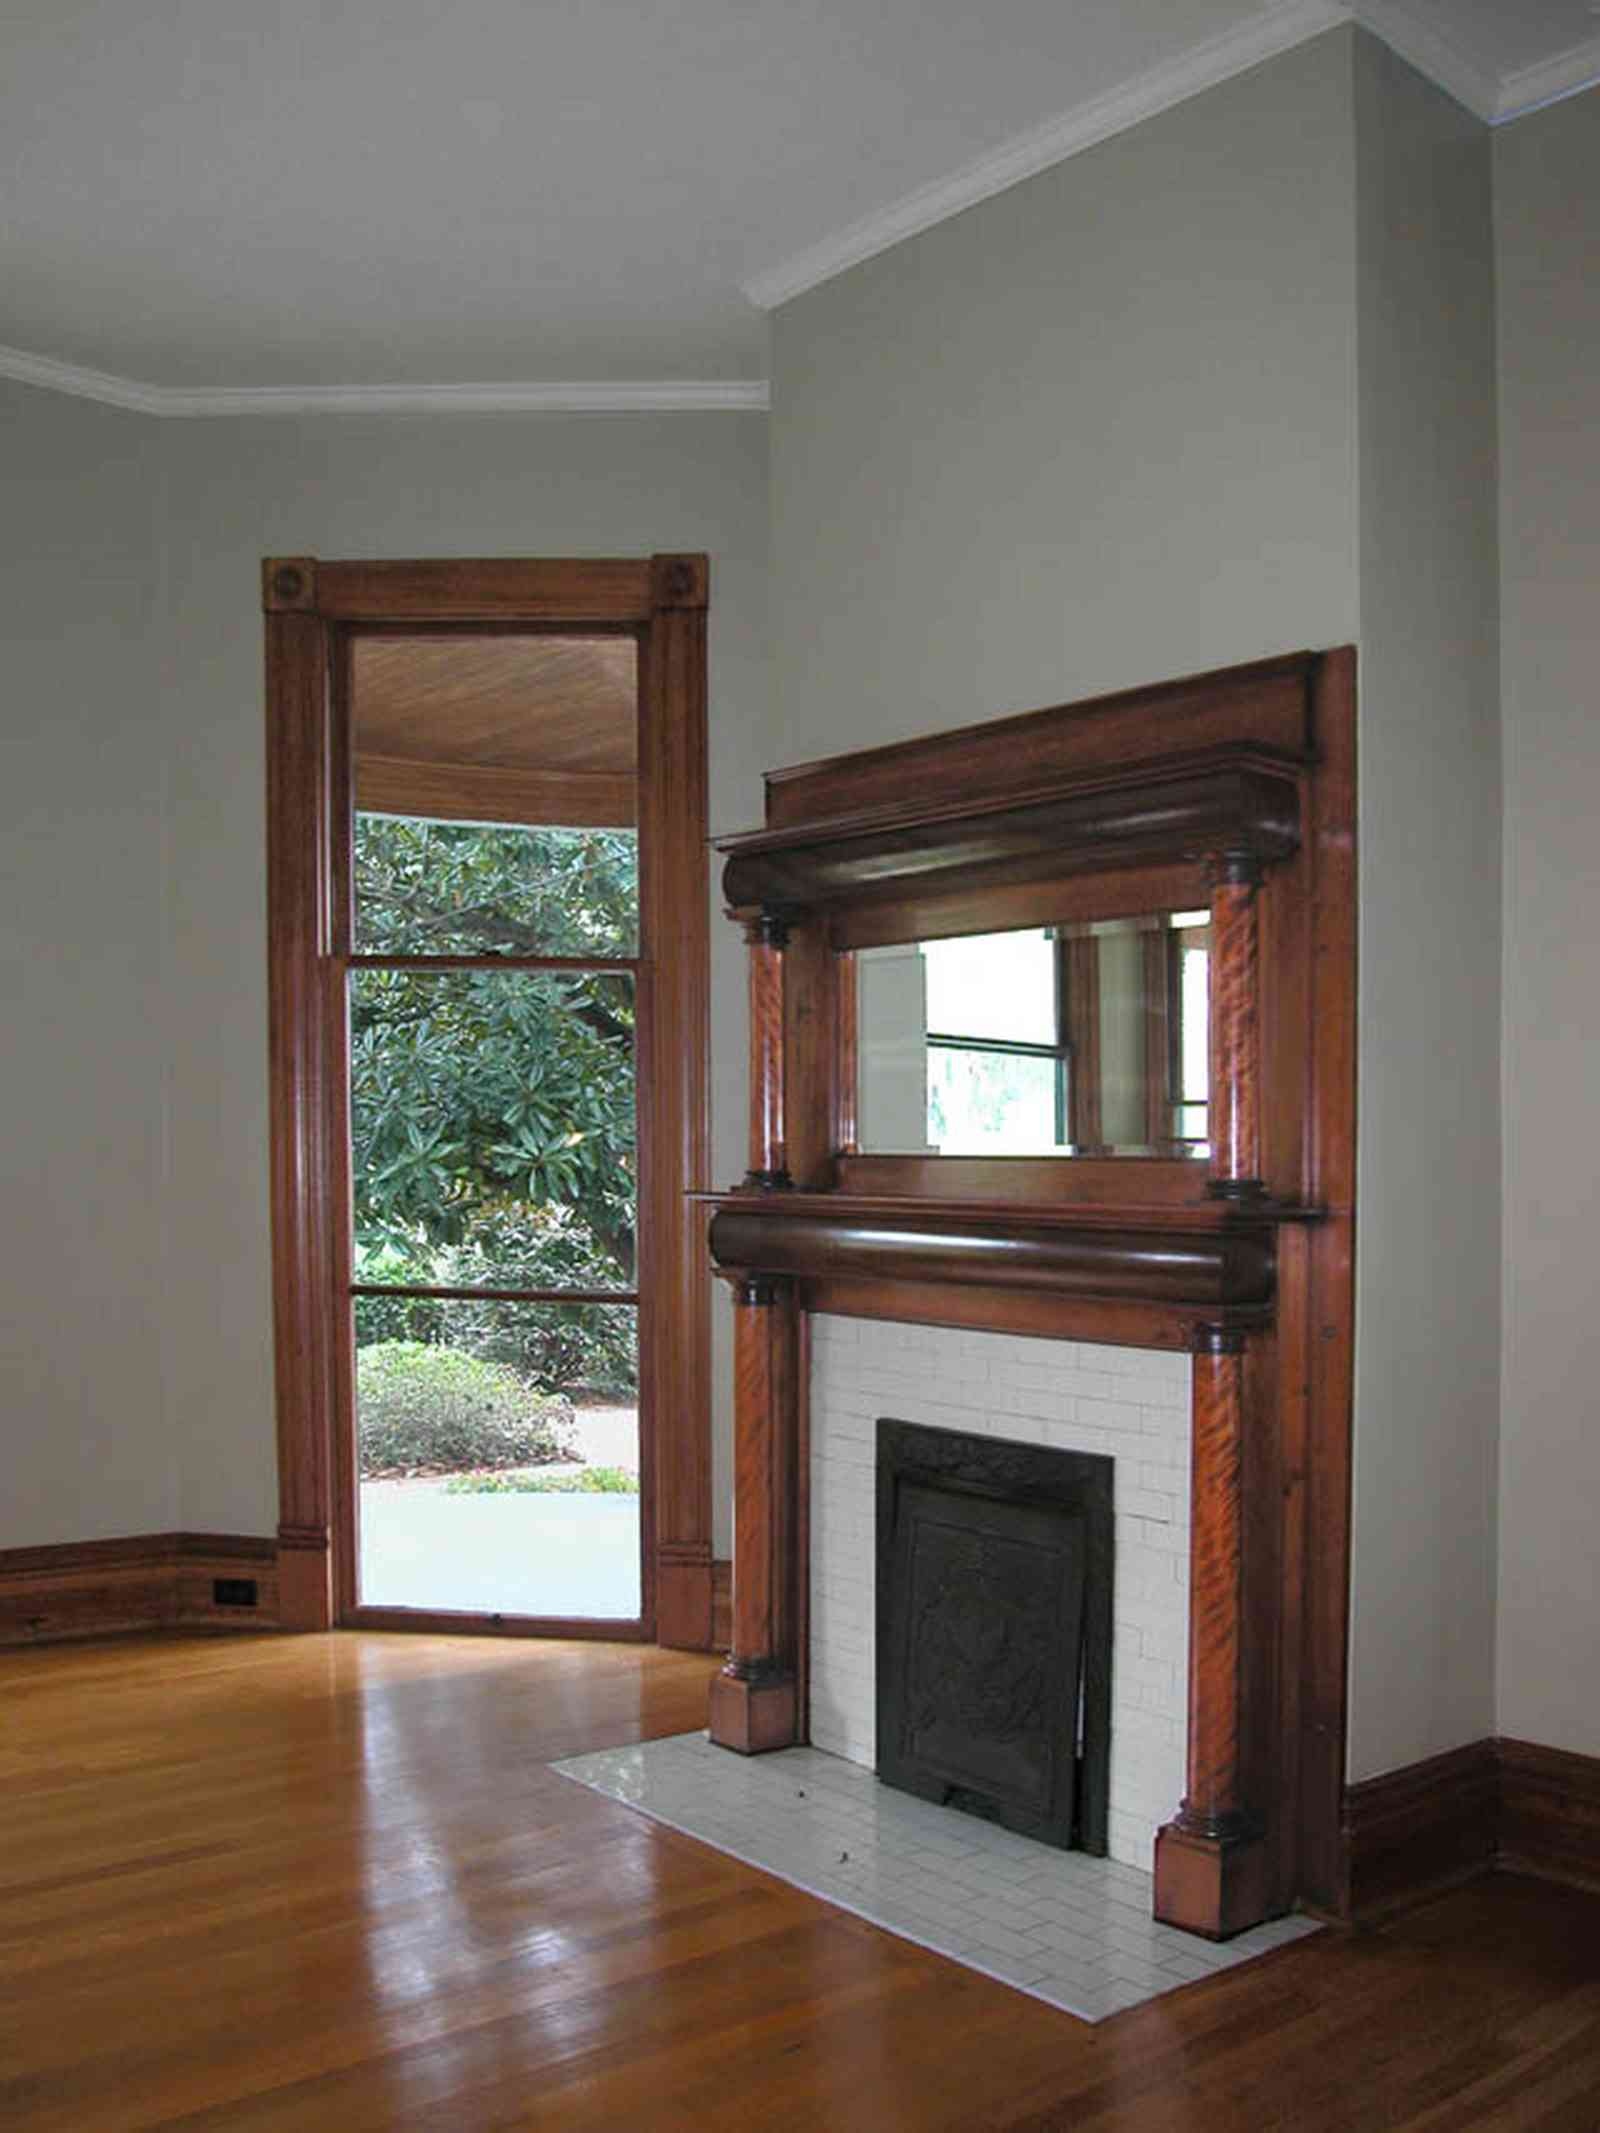 North-Hill:-304-West-Gadsden-Street_18.jpg:  floor-length windows, mantle, fireplace, north hill preservation district